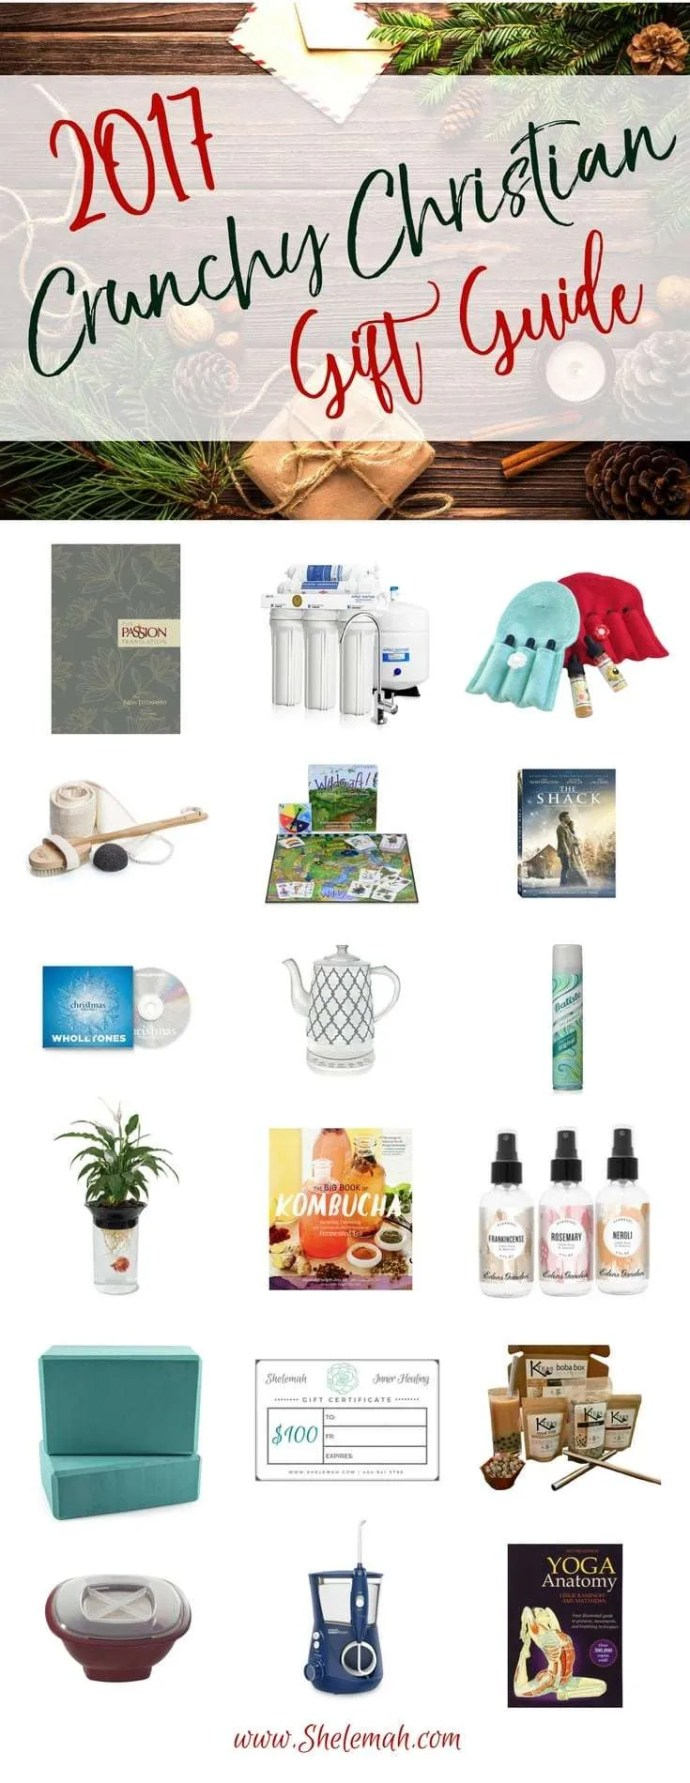 Crunchy Christian Gift Guide - all the best gift ideas for the alternative and holistic health, organic, granola loving ladies on your list. #giftguide